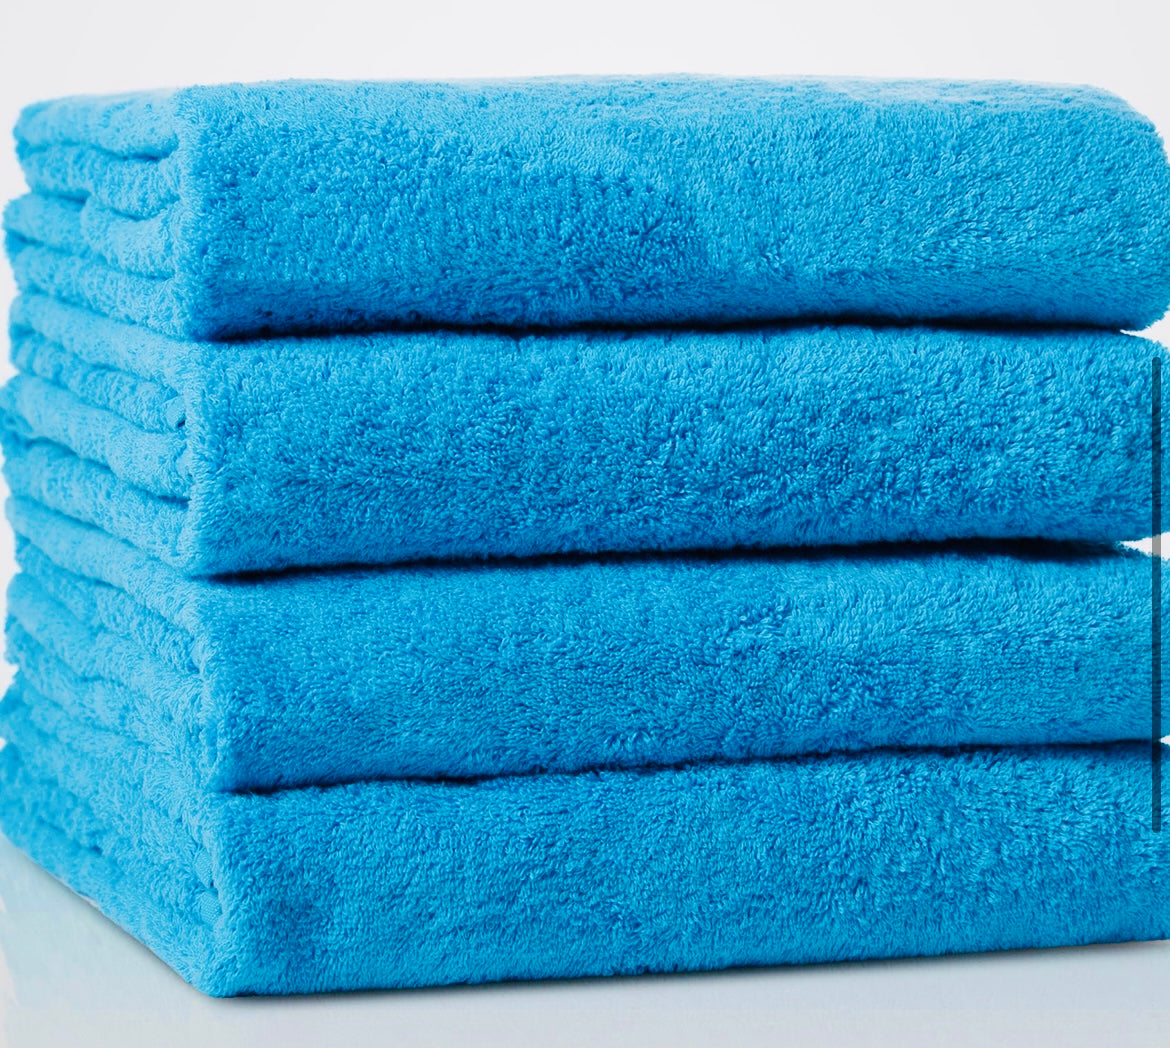 Egyptian Cotton 600g Towels - 2 Sizes